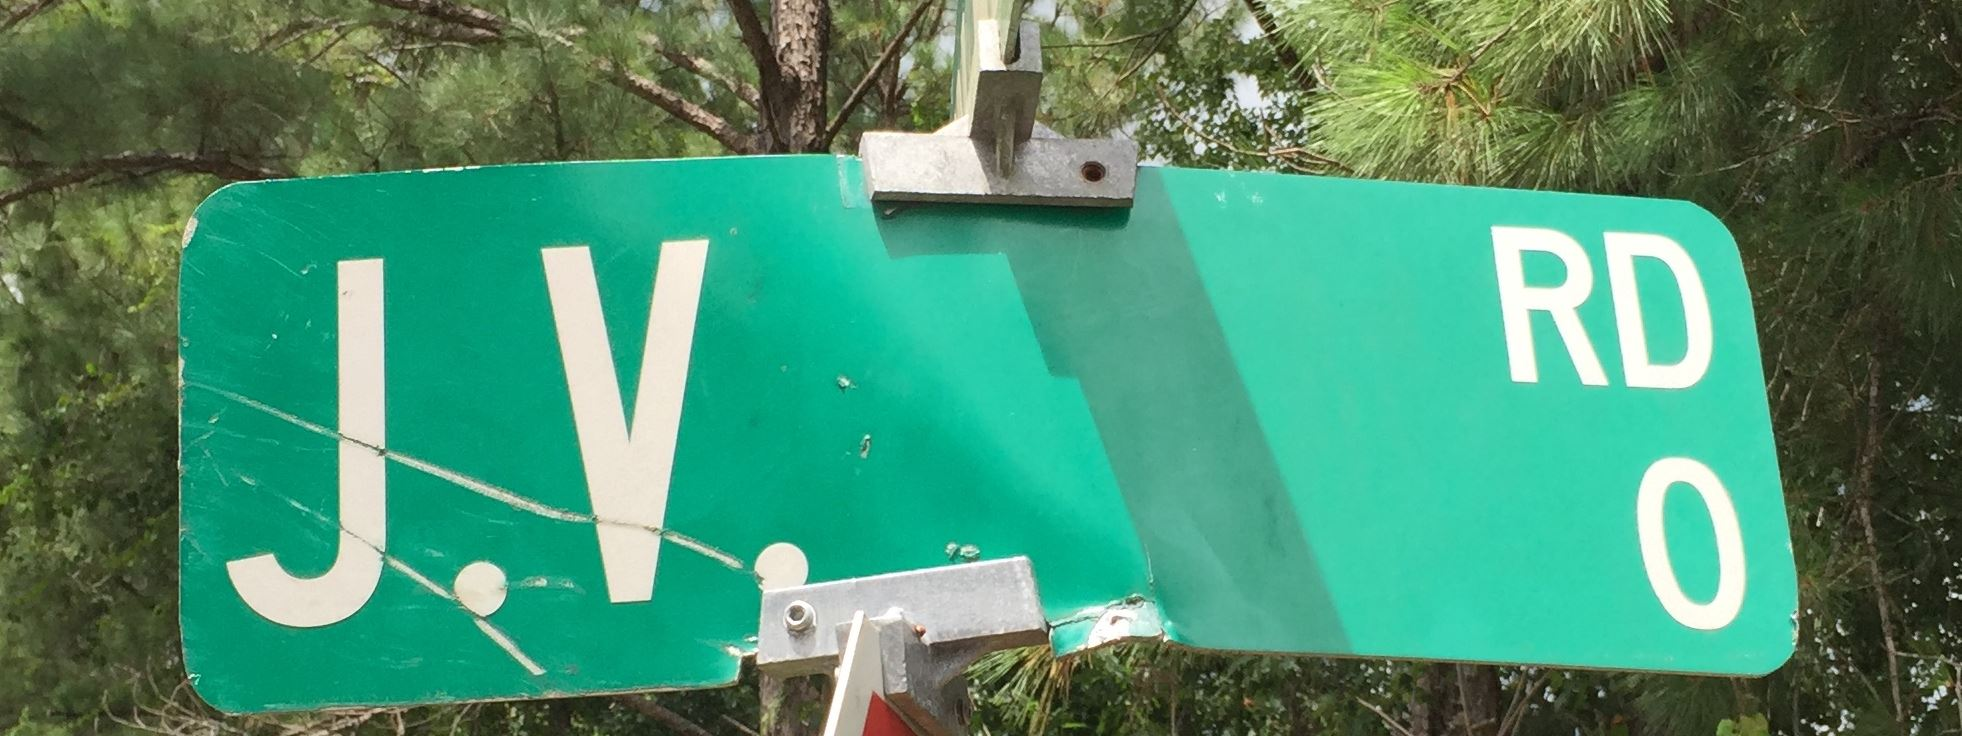 Damaged Street Sign